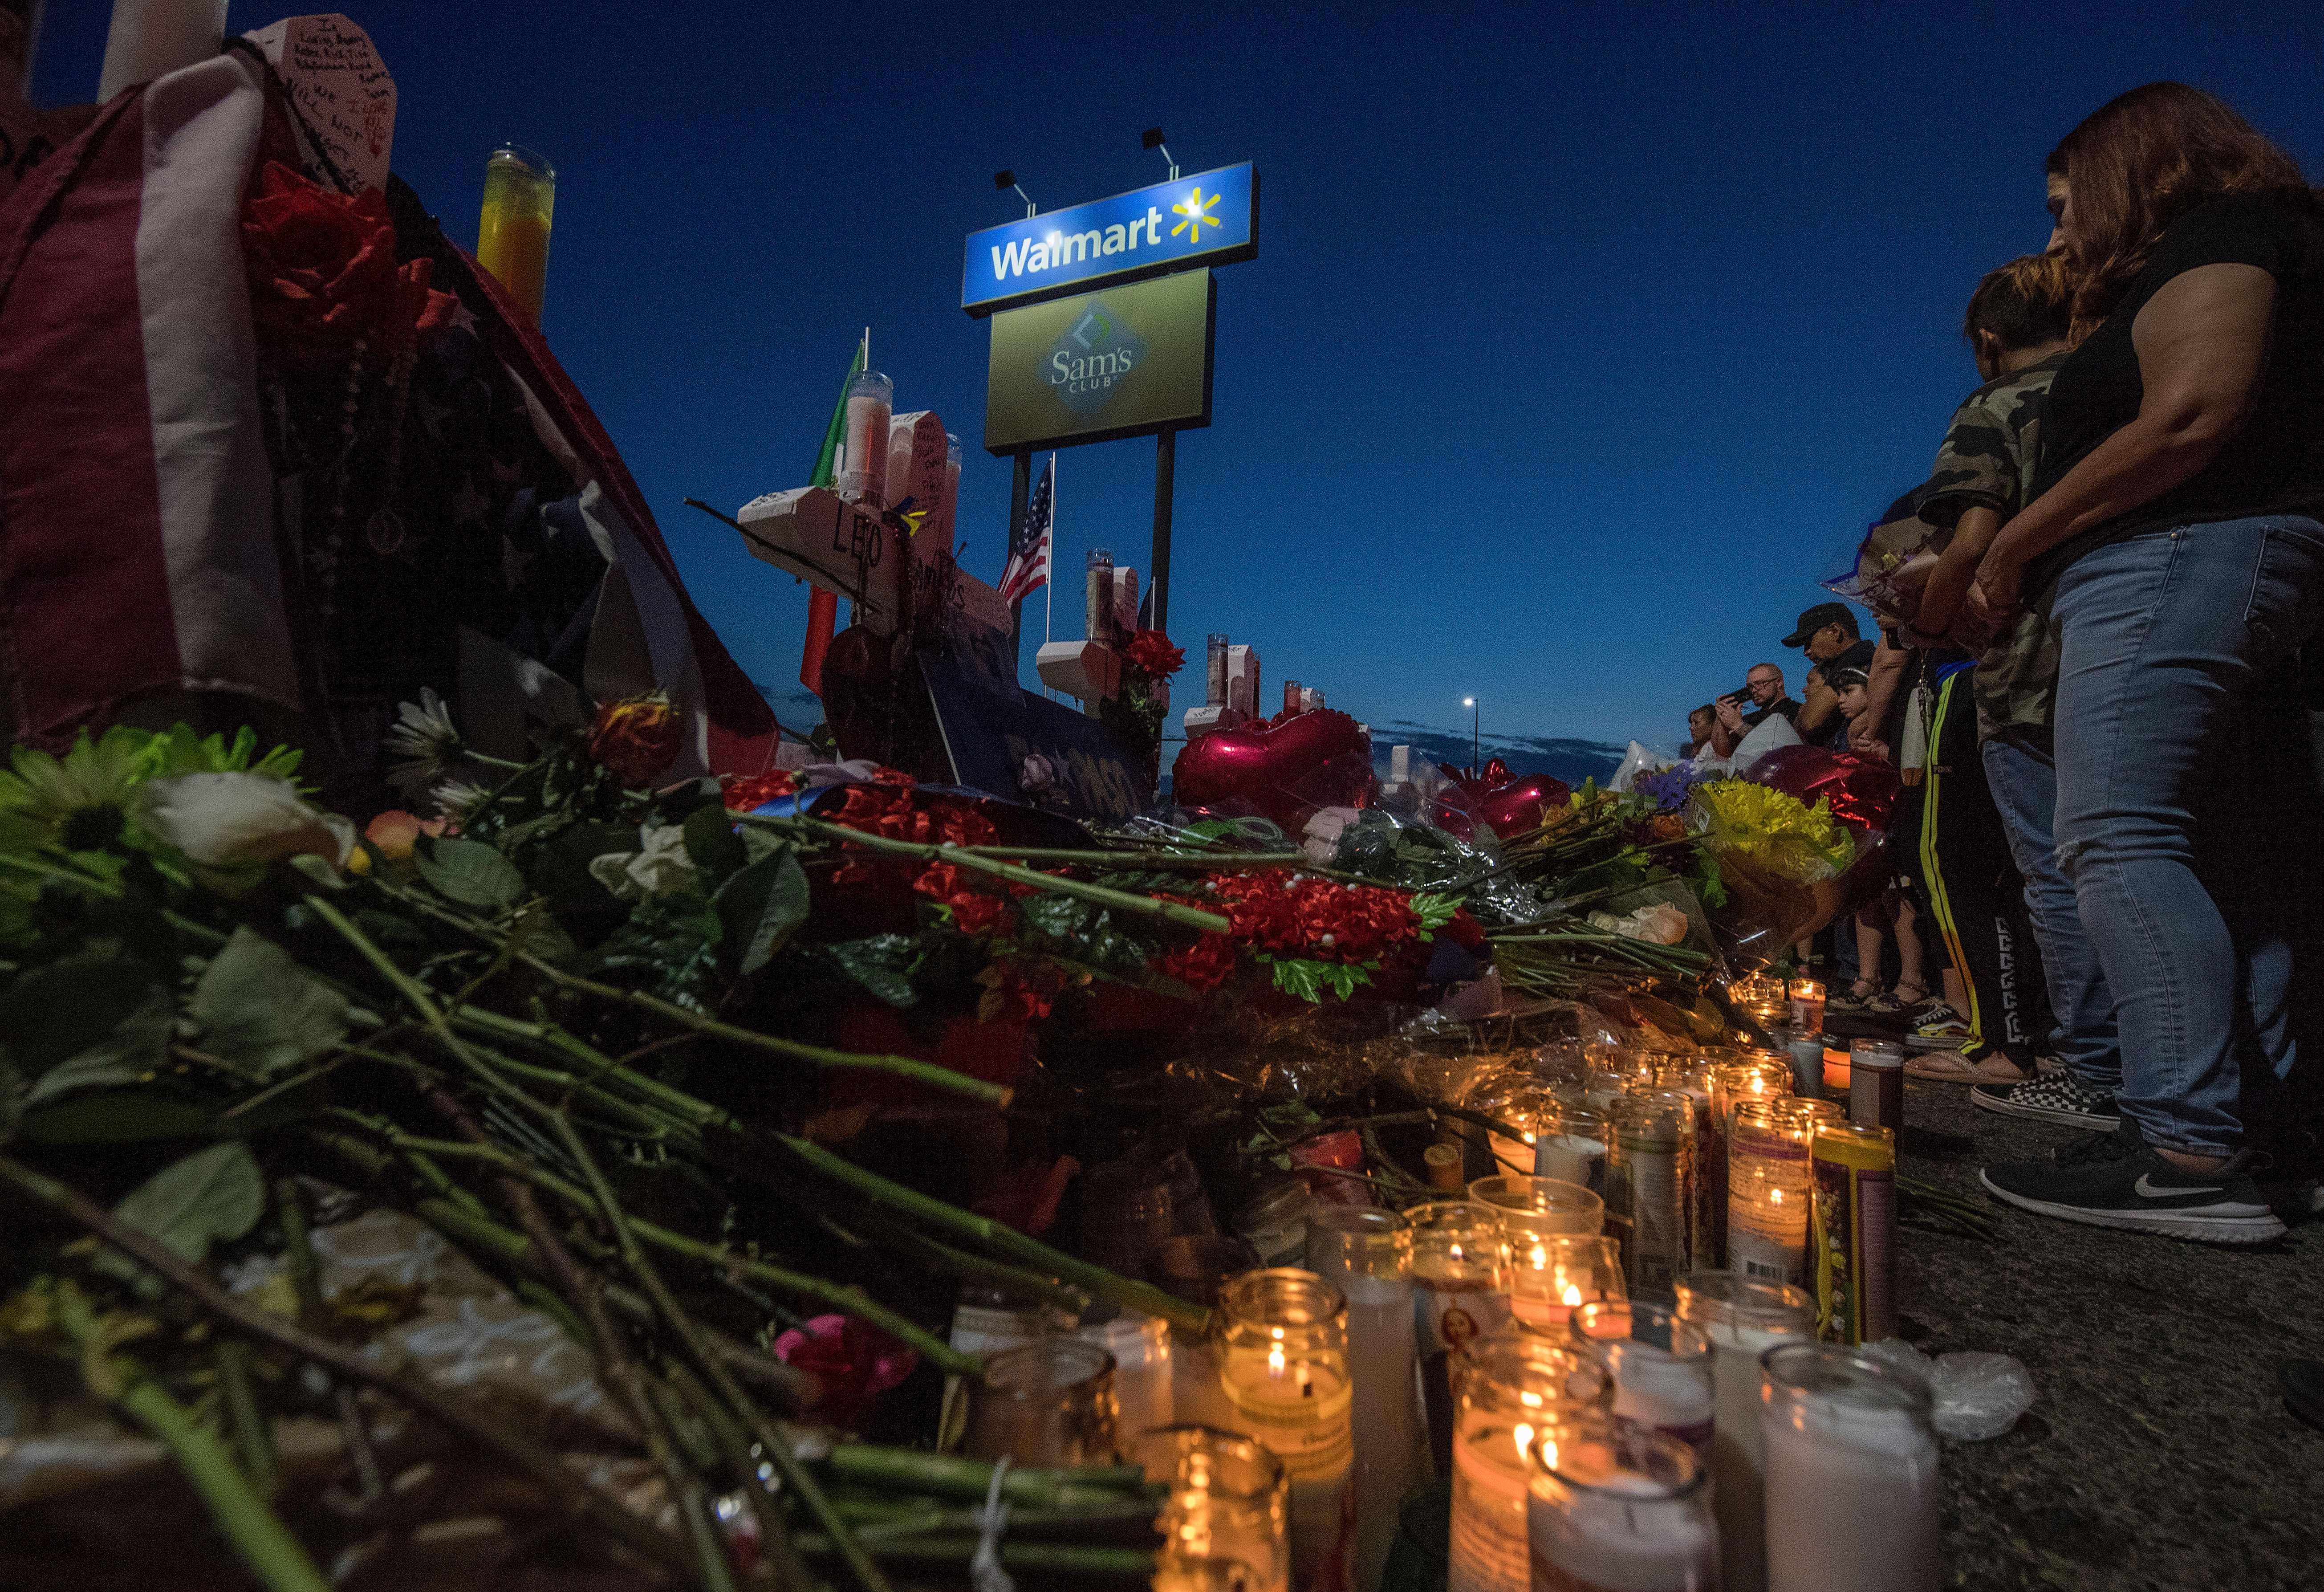 People pay their respects at a memorial for victims of the shooting that left a total of 22 people dead at a Walmart in El Paso, Texas, on Aug. 6, 2019.